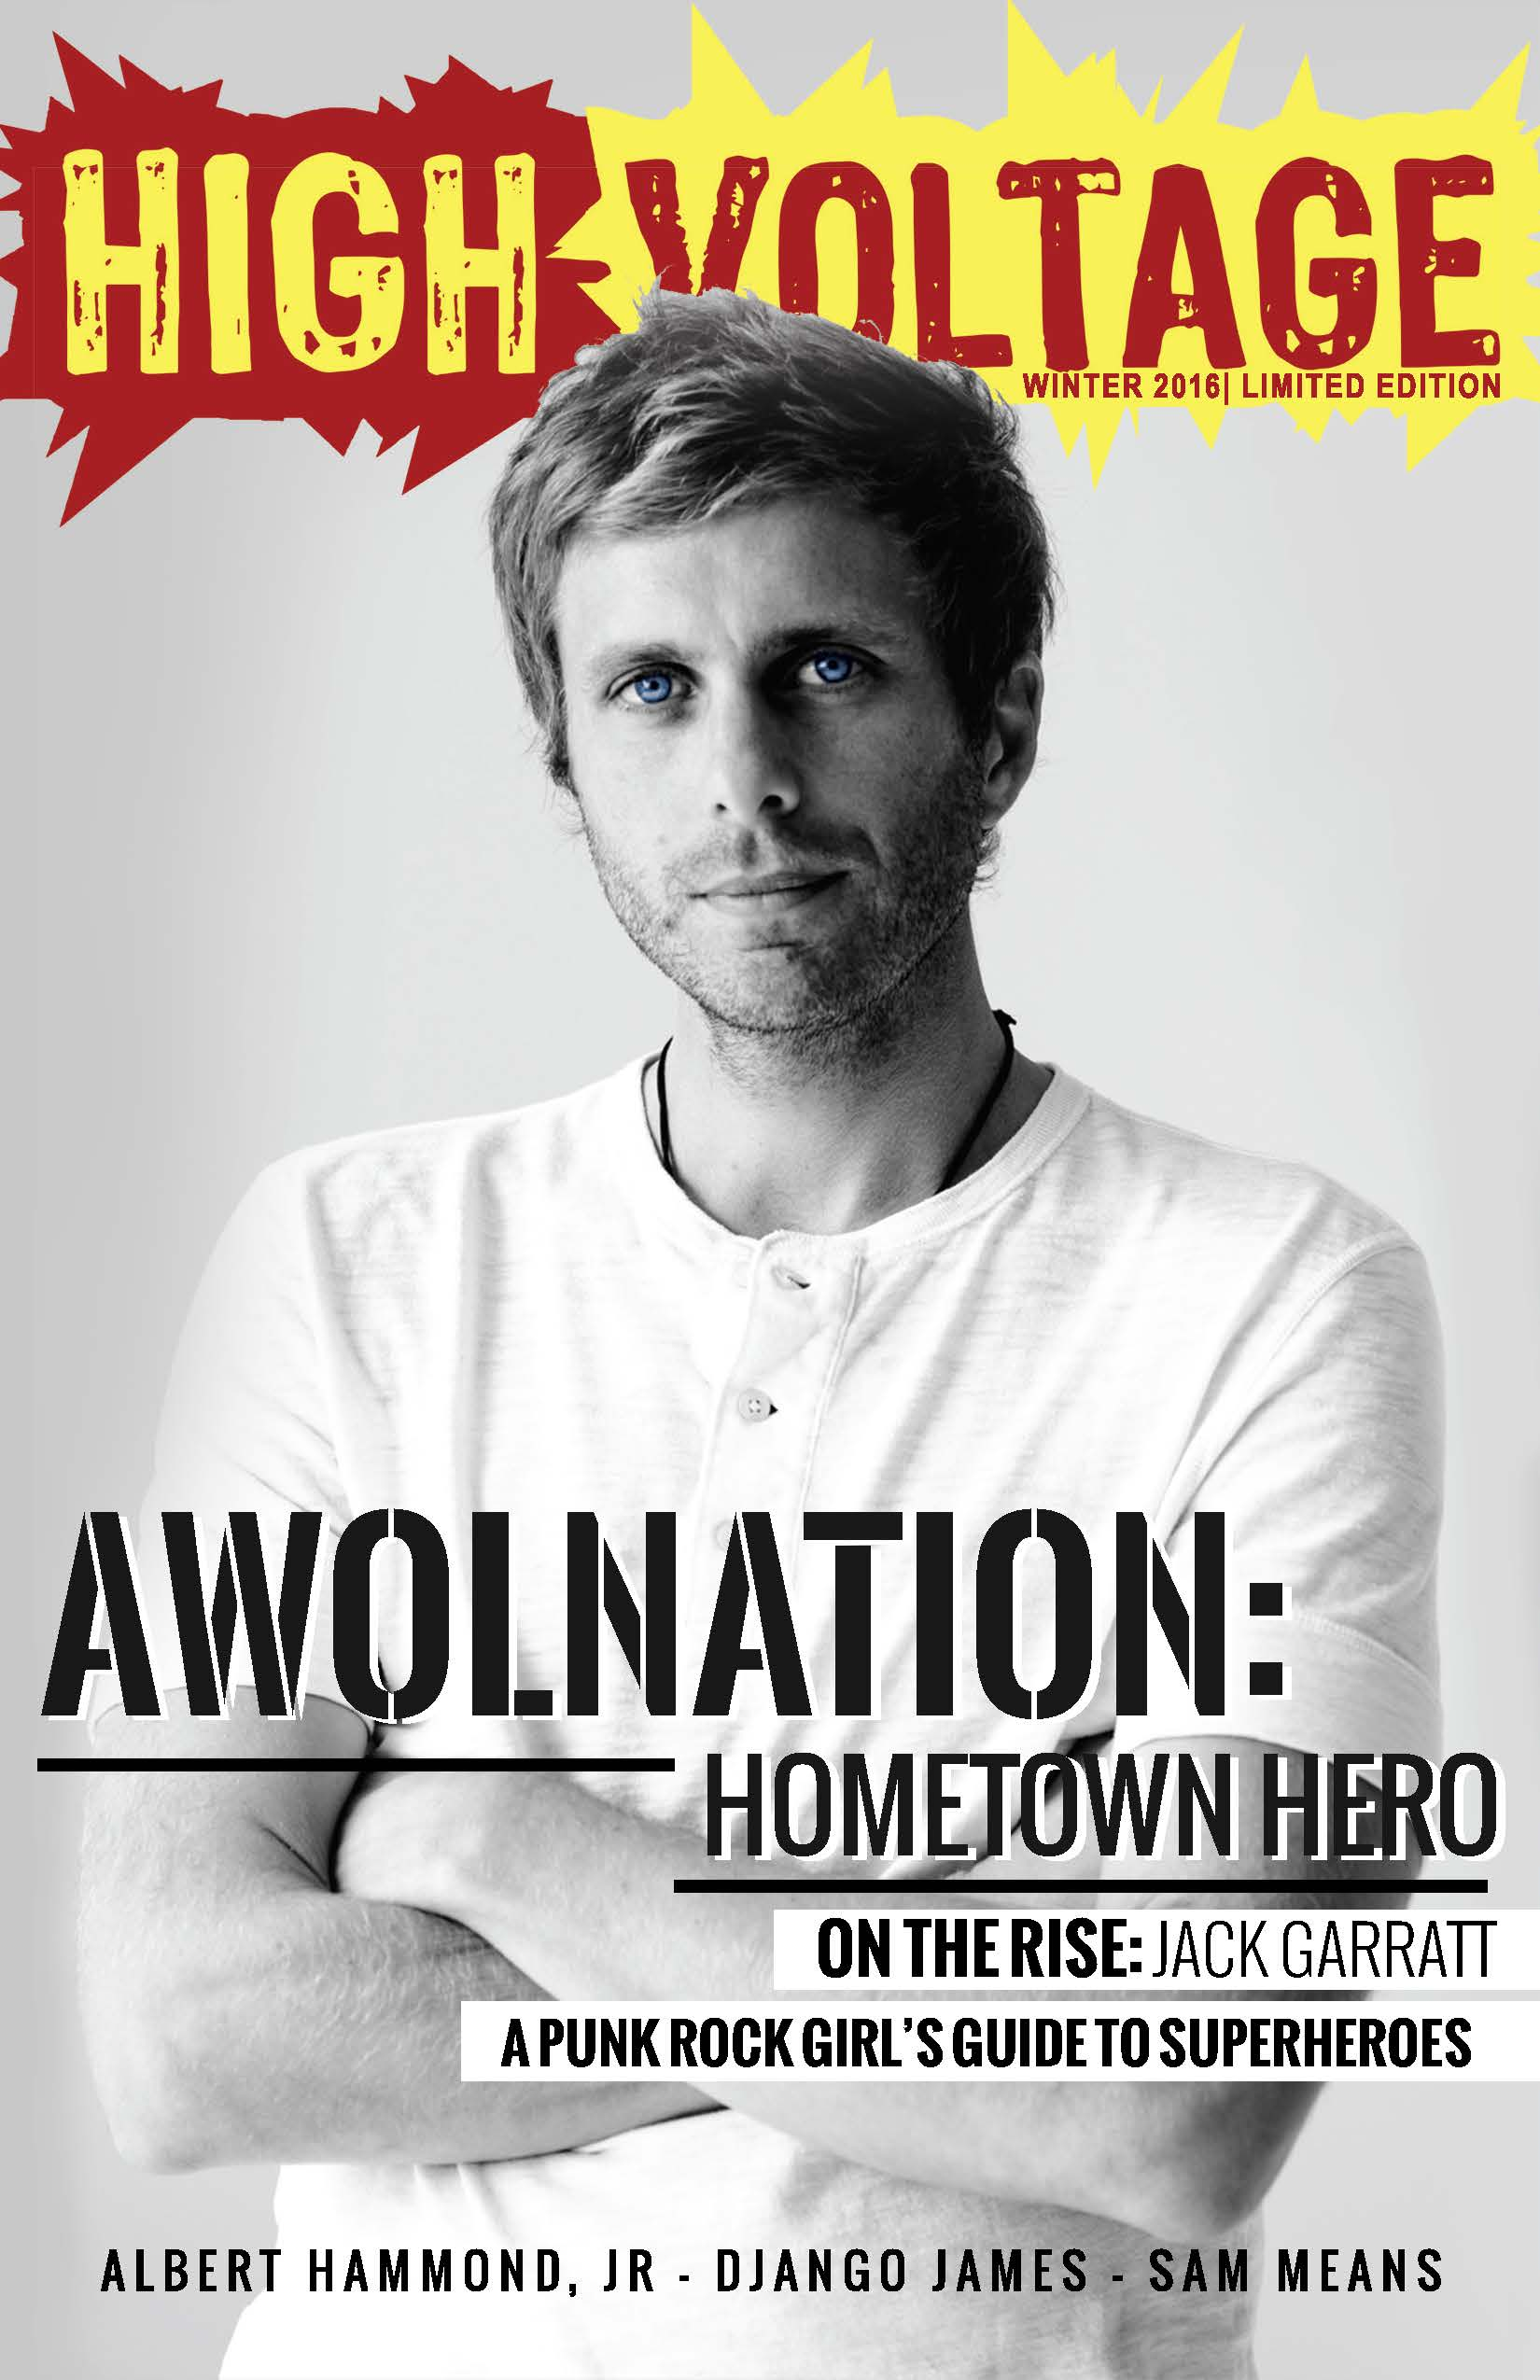 AWOLNATION Winter 2016